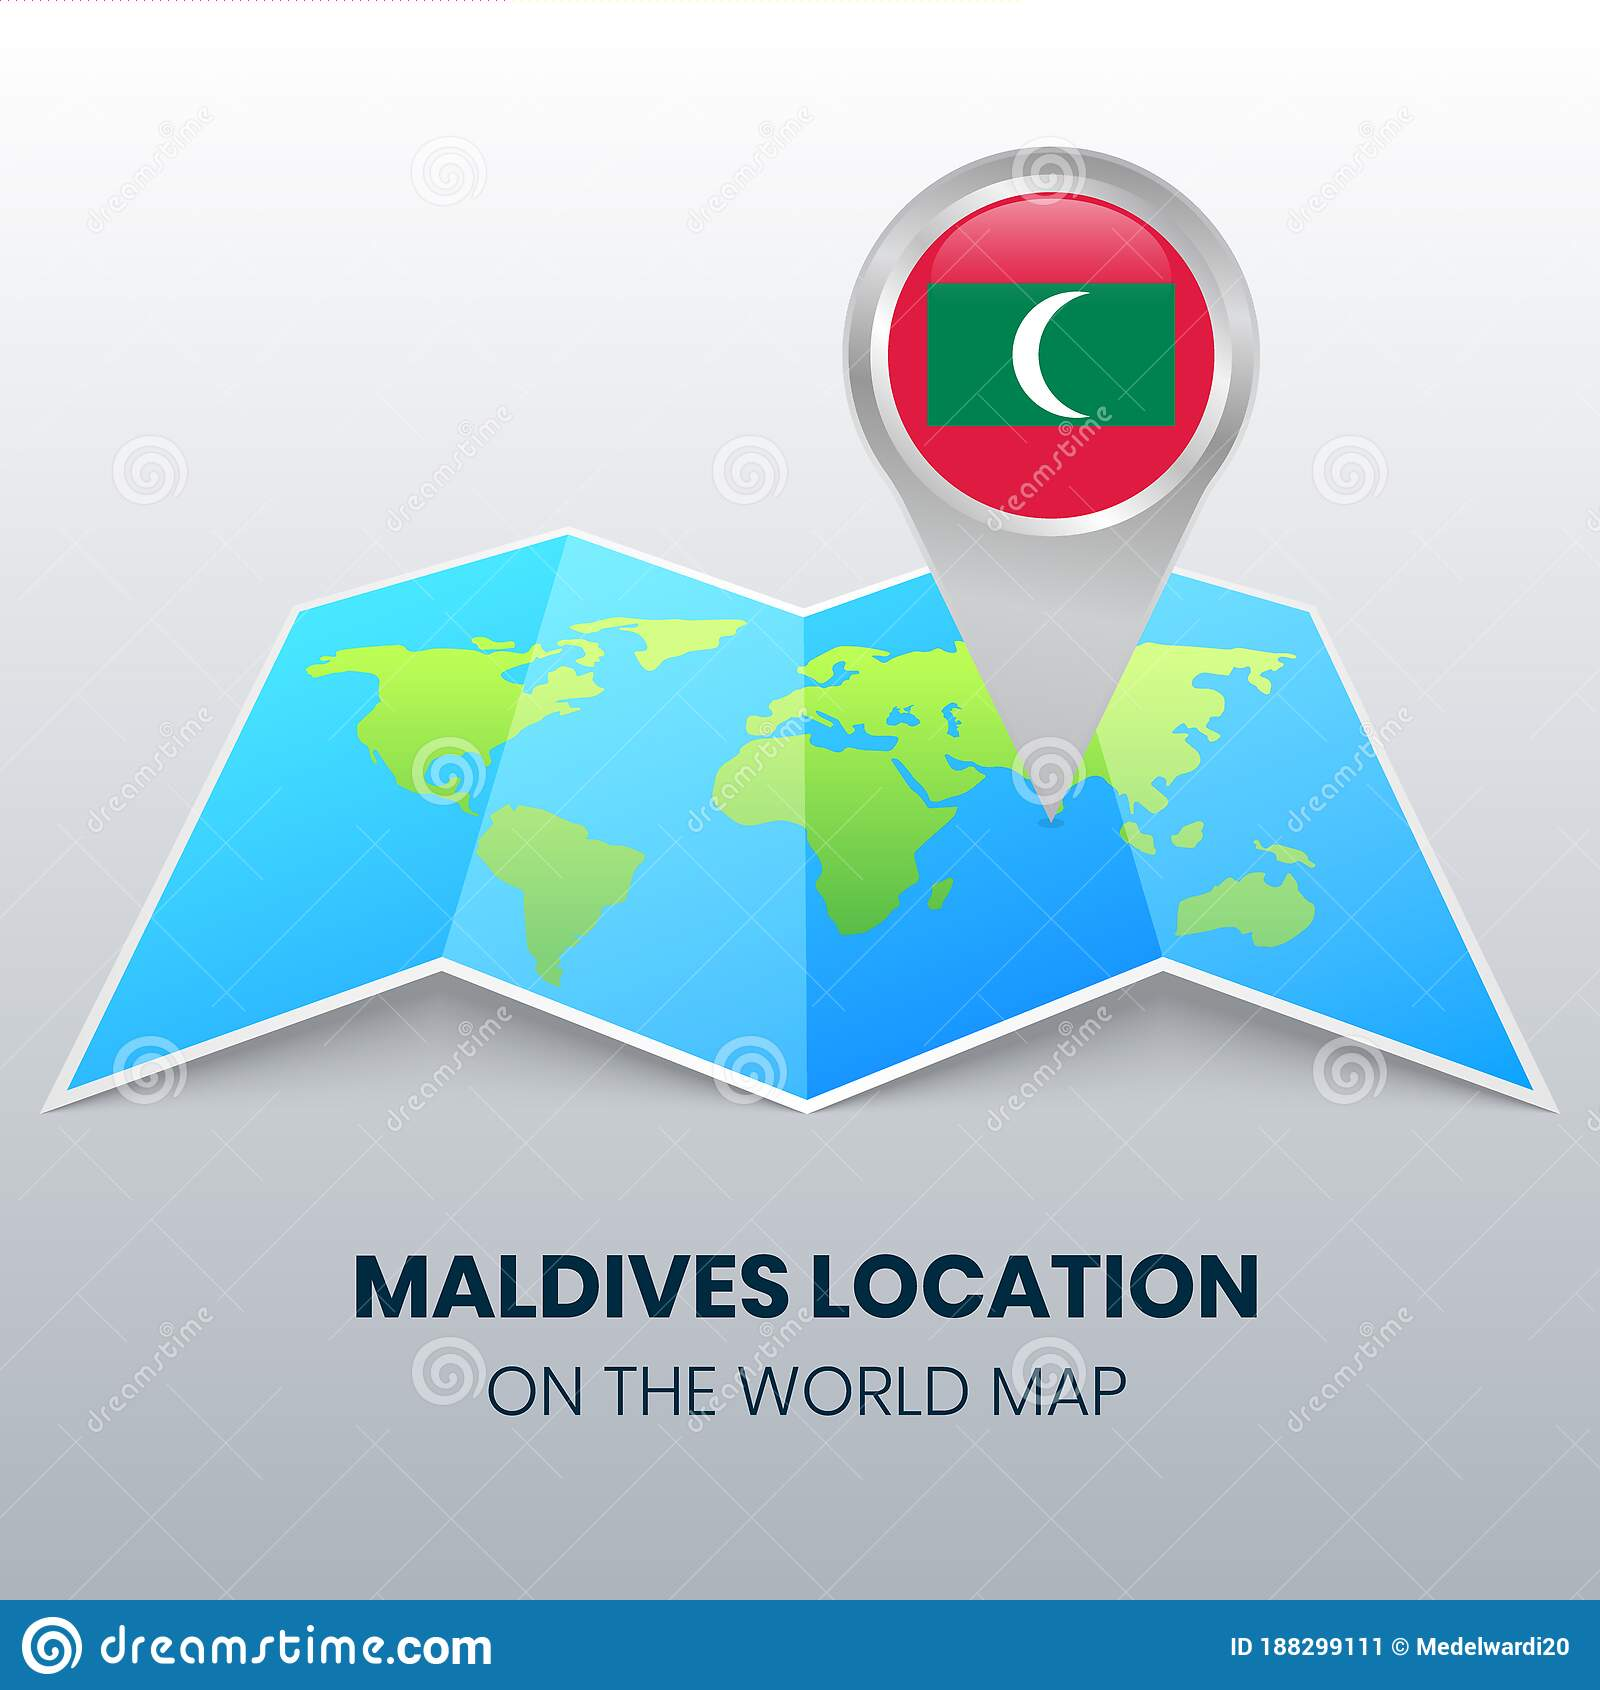 Image of: Location Icon Of Maldives On The World Map Round Pin Icon Of Maldives Stock Vector Illustration Of Graphic Earth 188299111